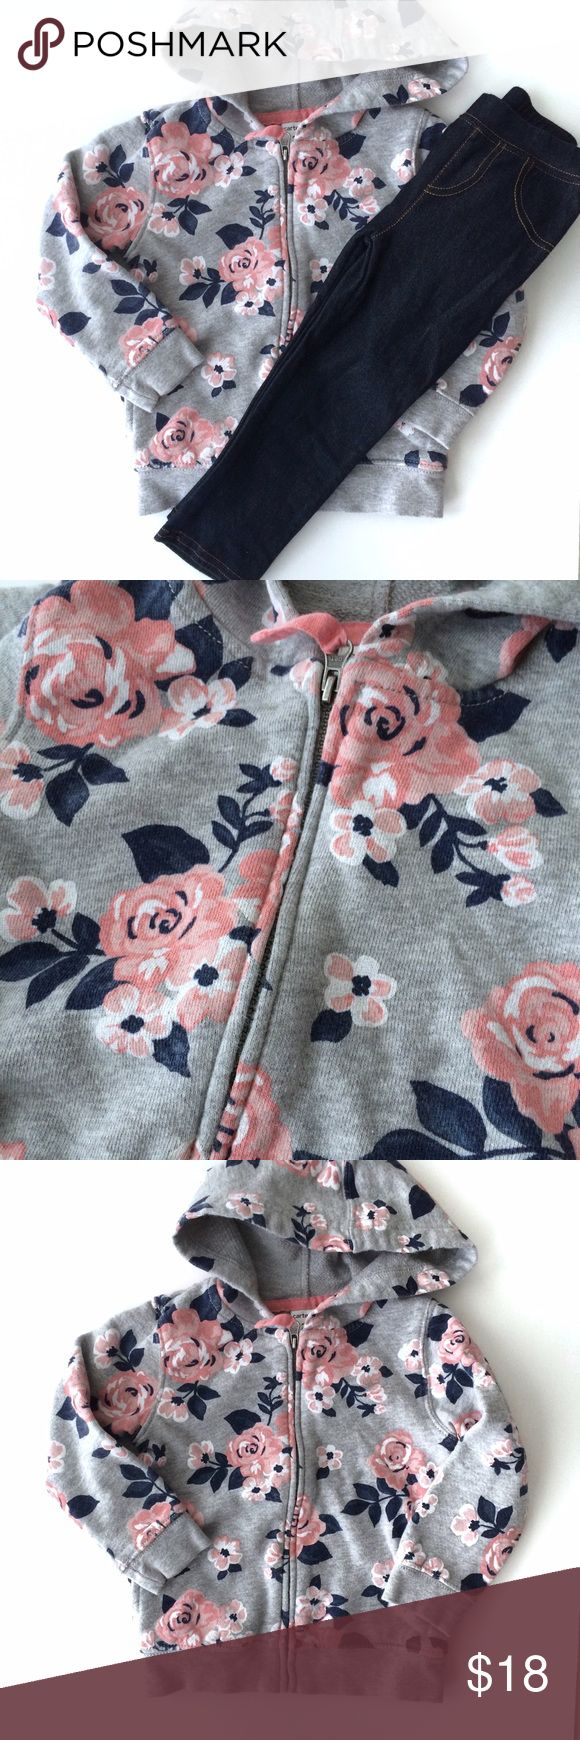 Floral Zip up and Jean Leggings Carter's Floral zip up in grey with pink roses and navy leaves, and Children's Place knit denim leggings. Both are in EUC. Shirts & Tops Sweatshirts & Hoodies